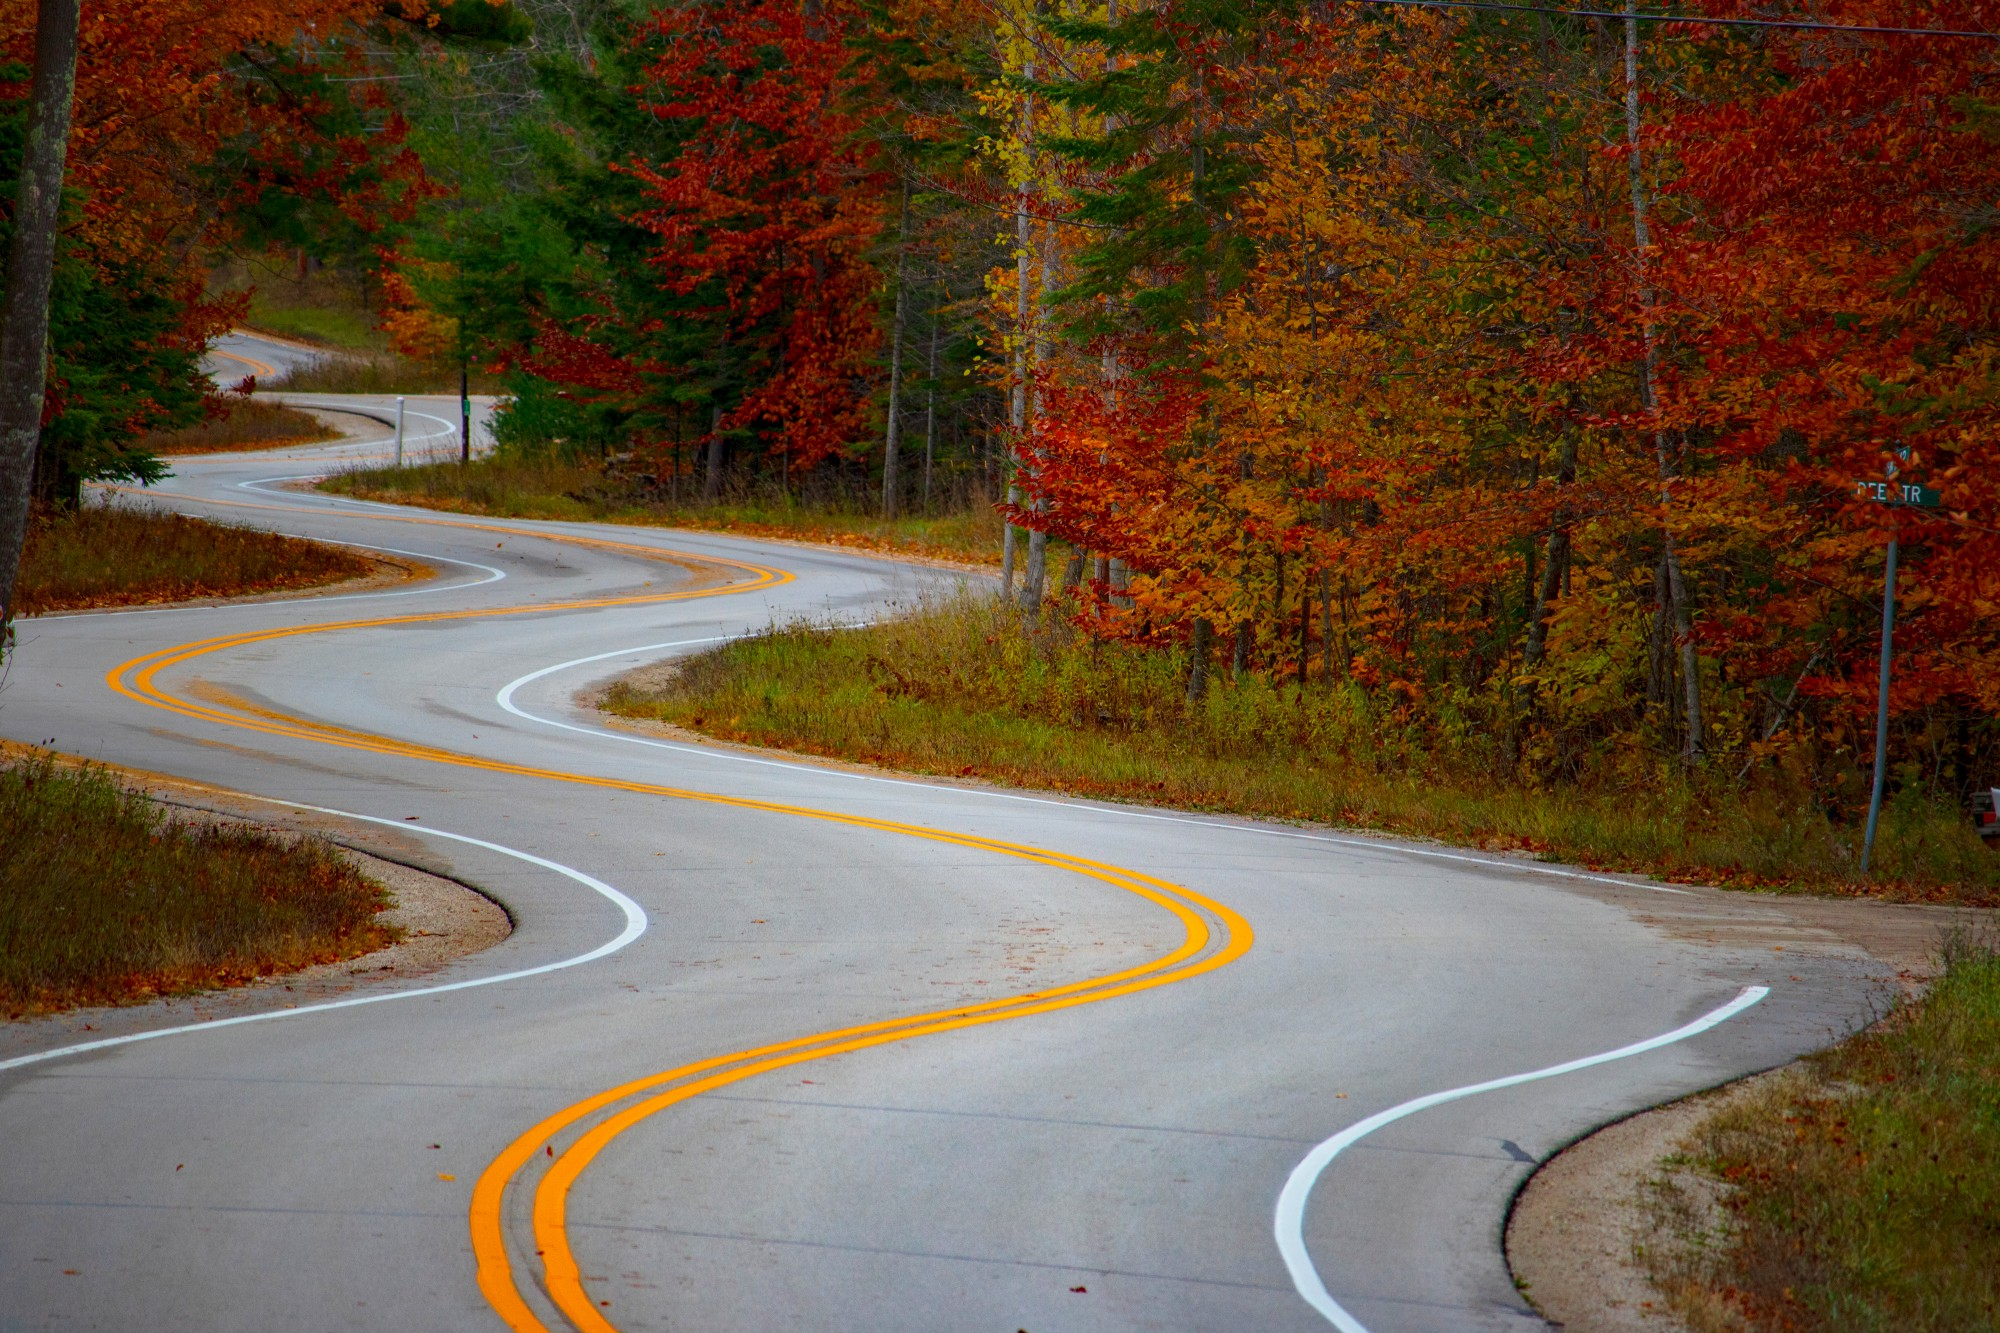 Curvy road with beautiful autumn colored leaves on trees